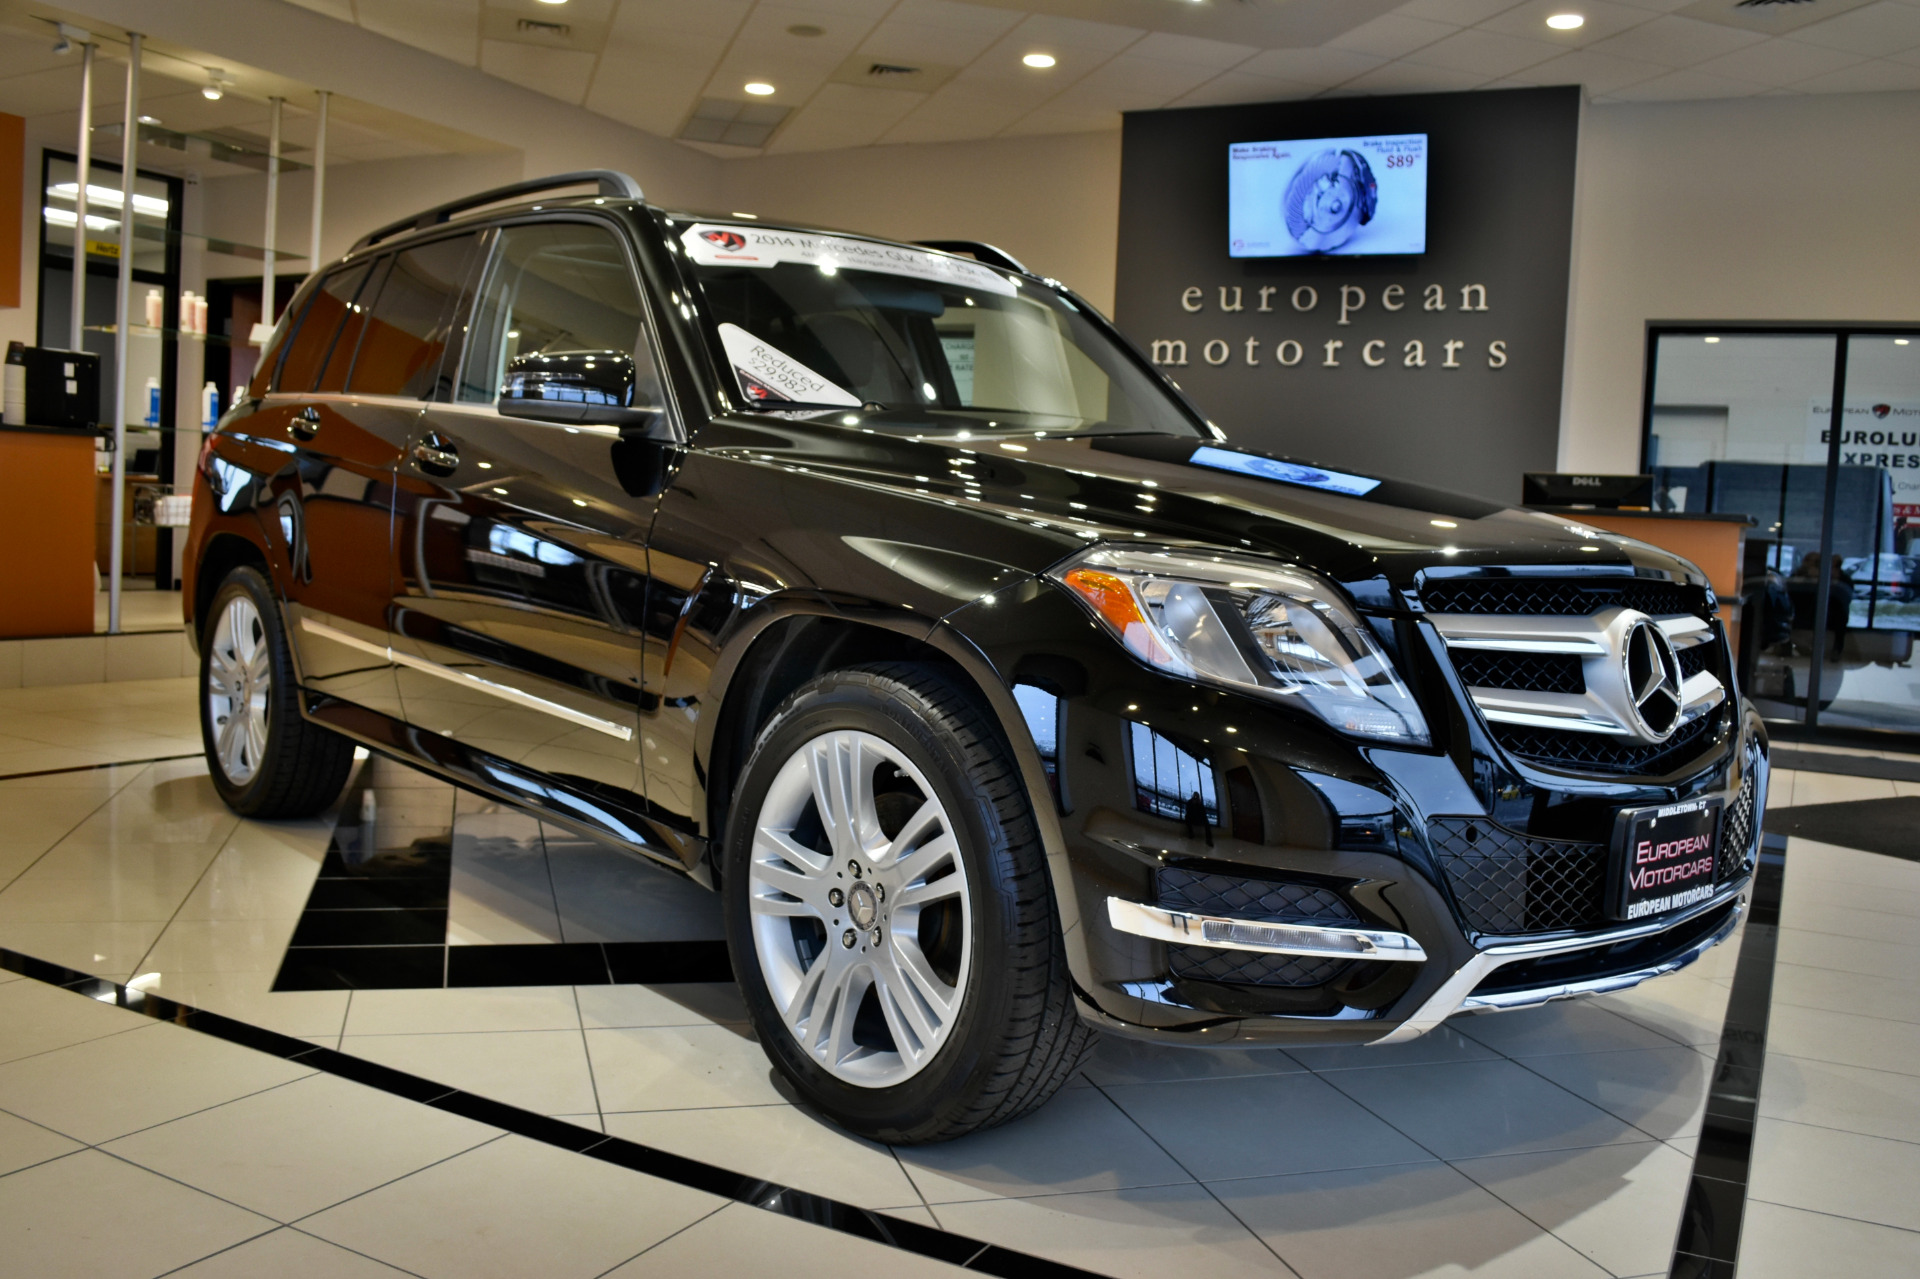 2014 mercedes benz glk 350 4matic for sale near middletown for Euro motorcars mercedes benz